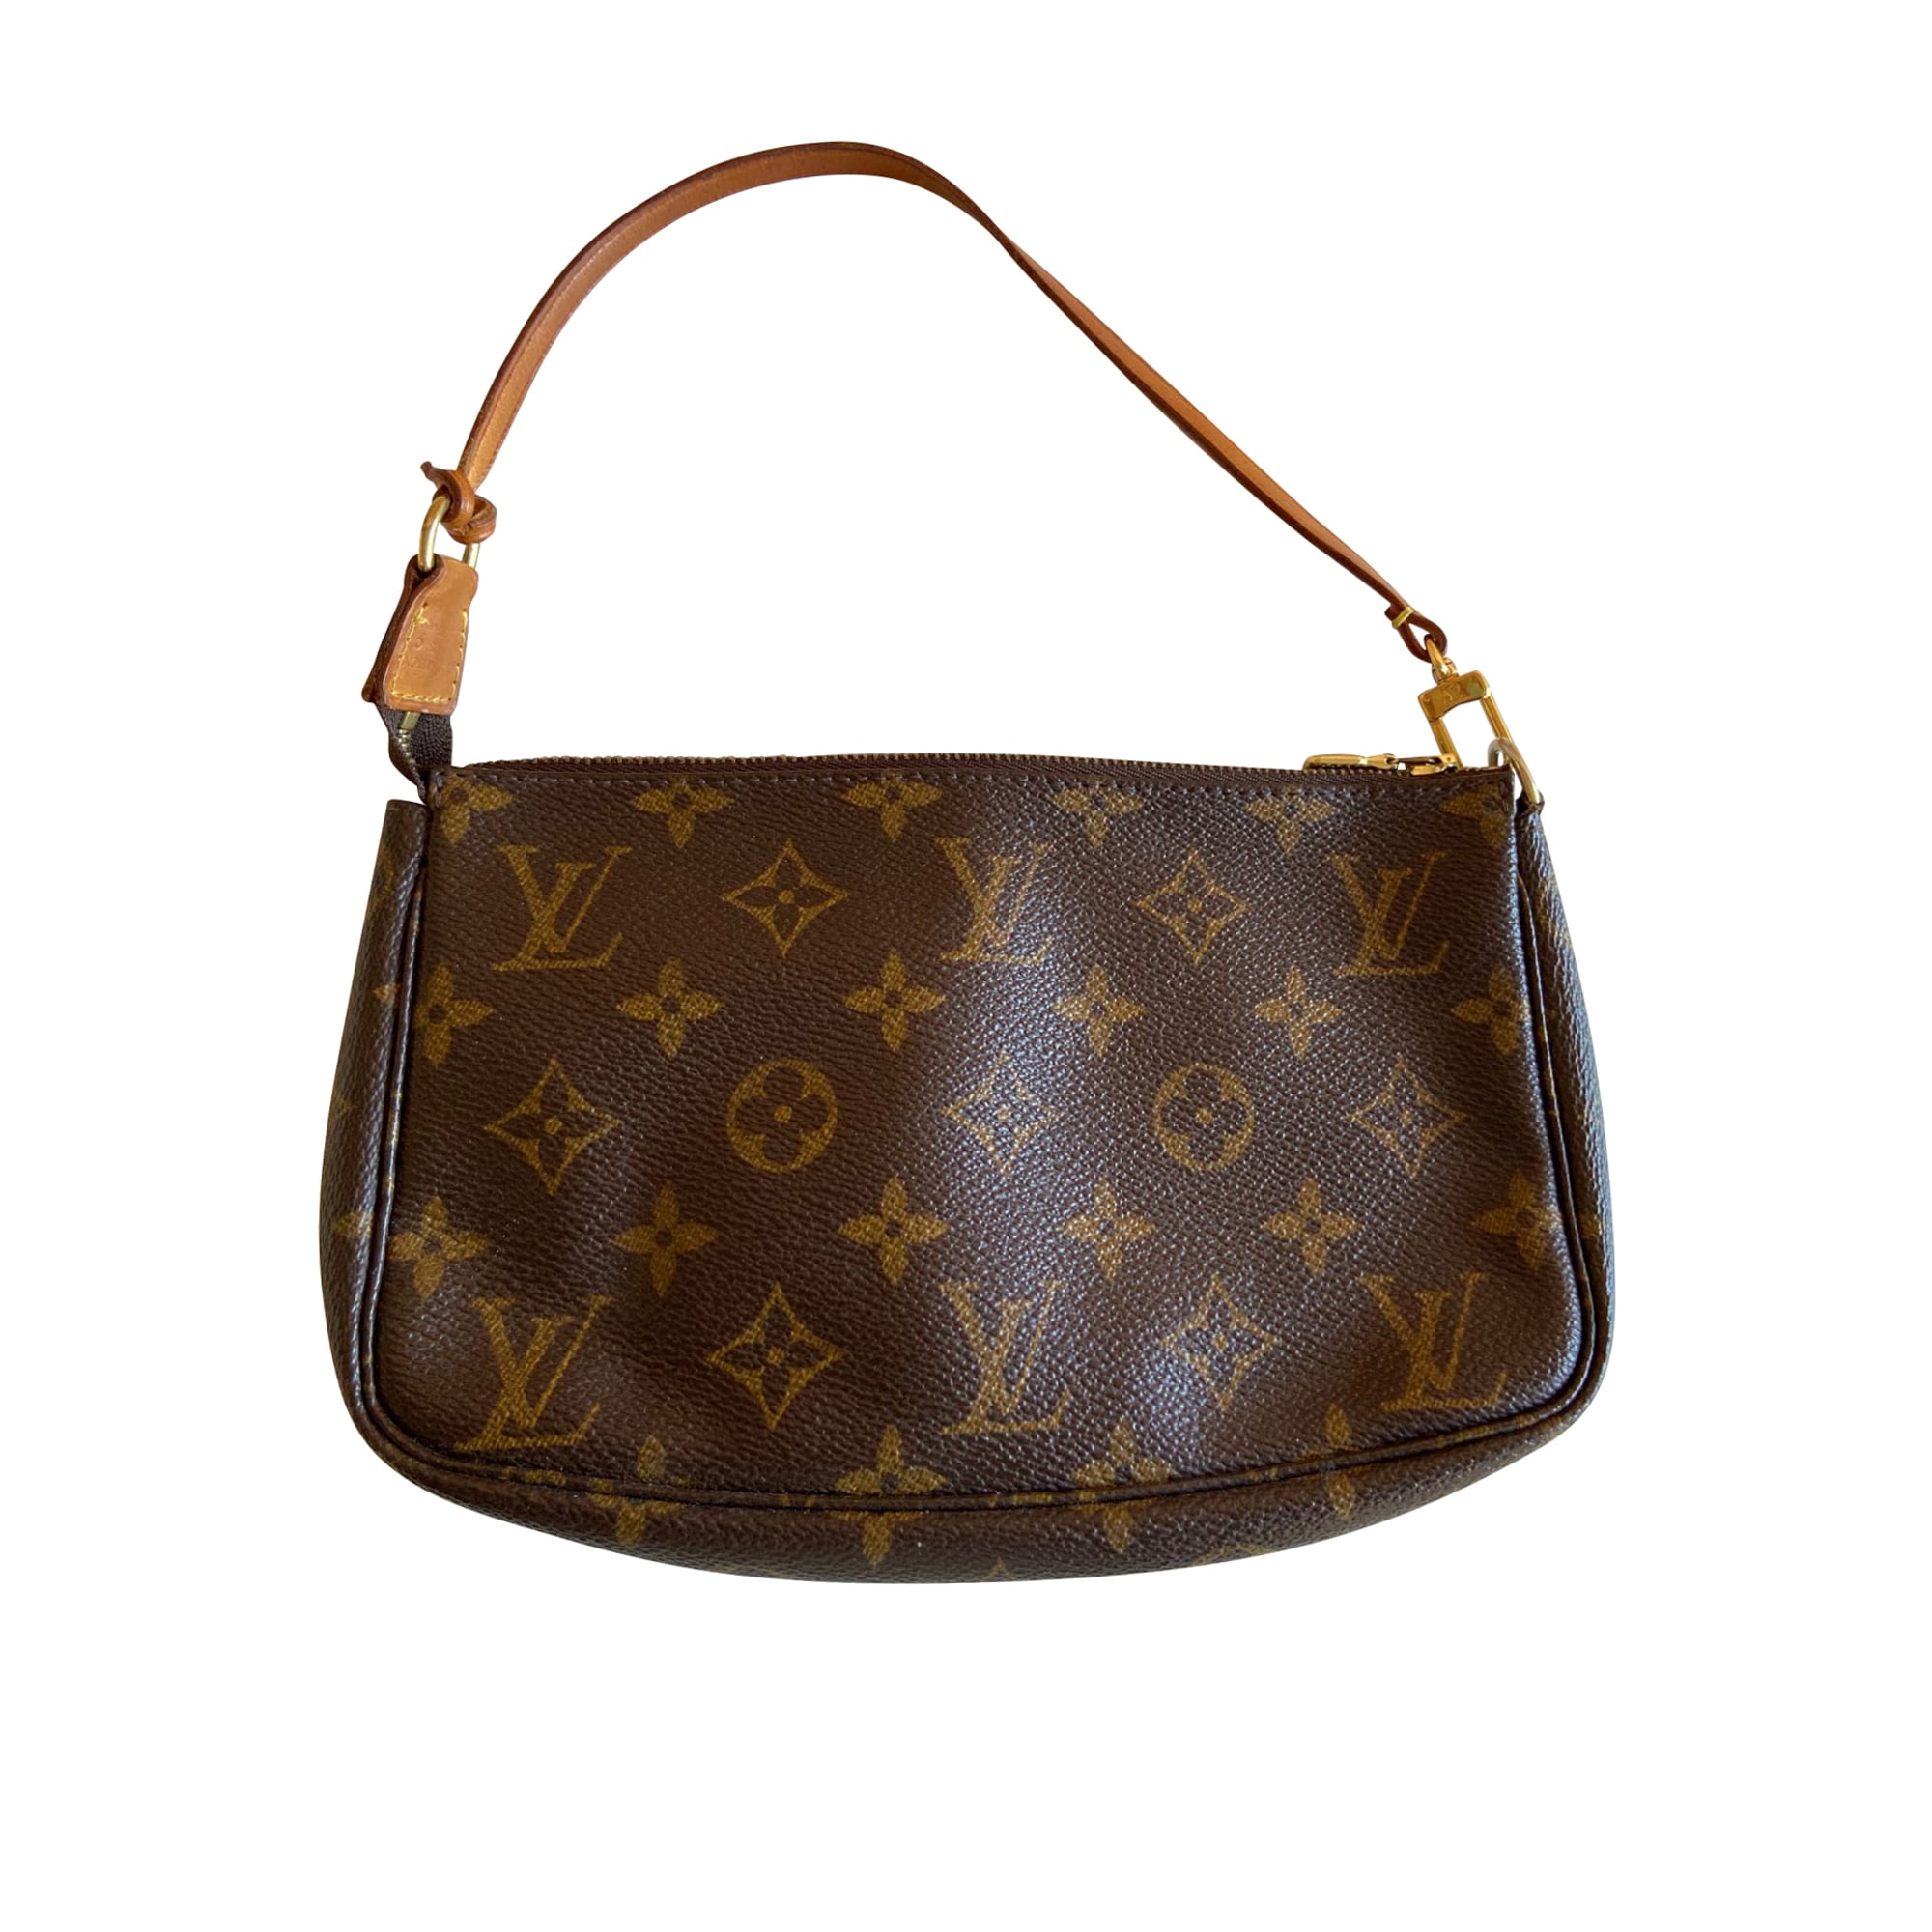 Pochette in pelle LOUIS VUITTON Marrone